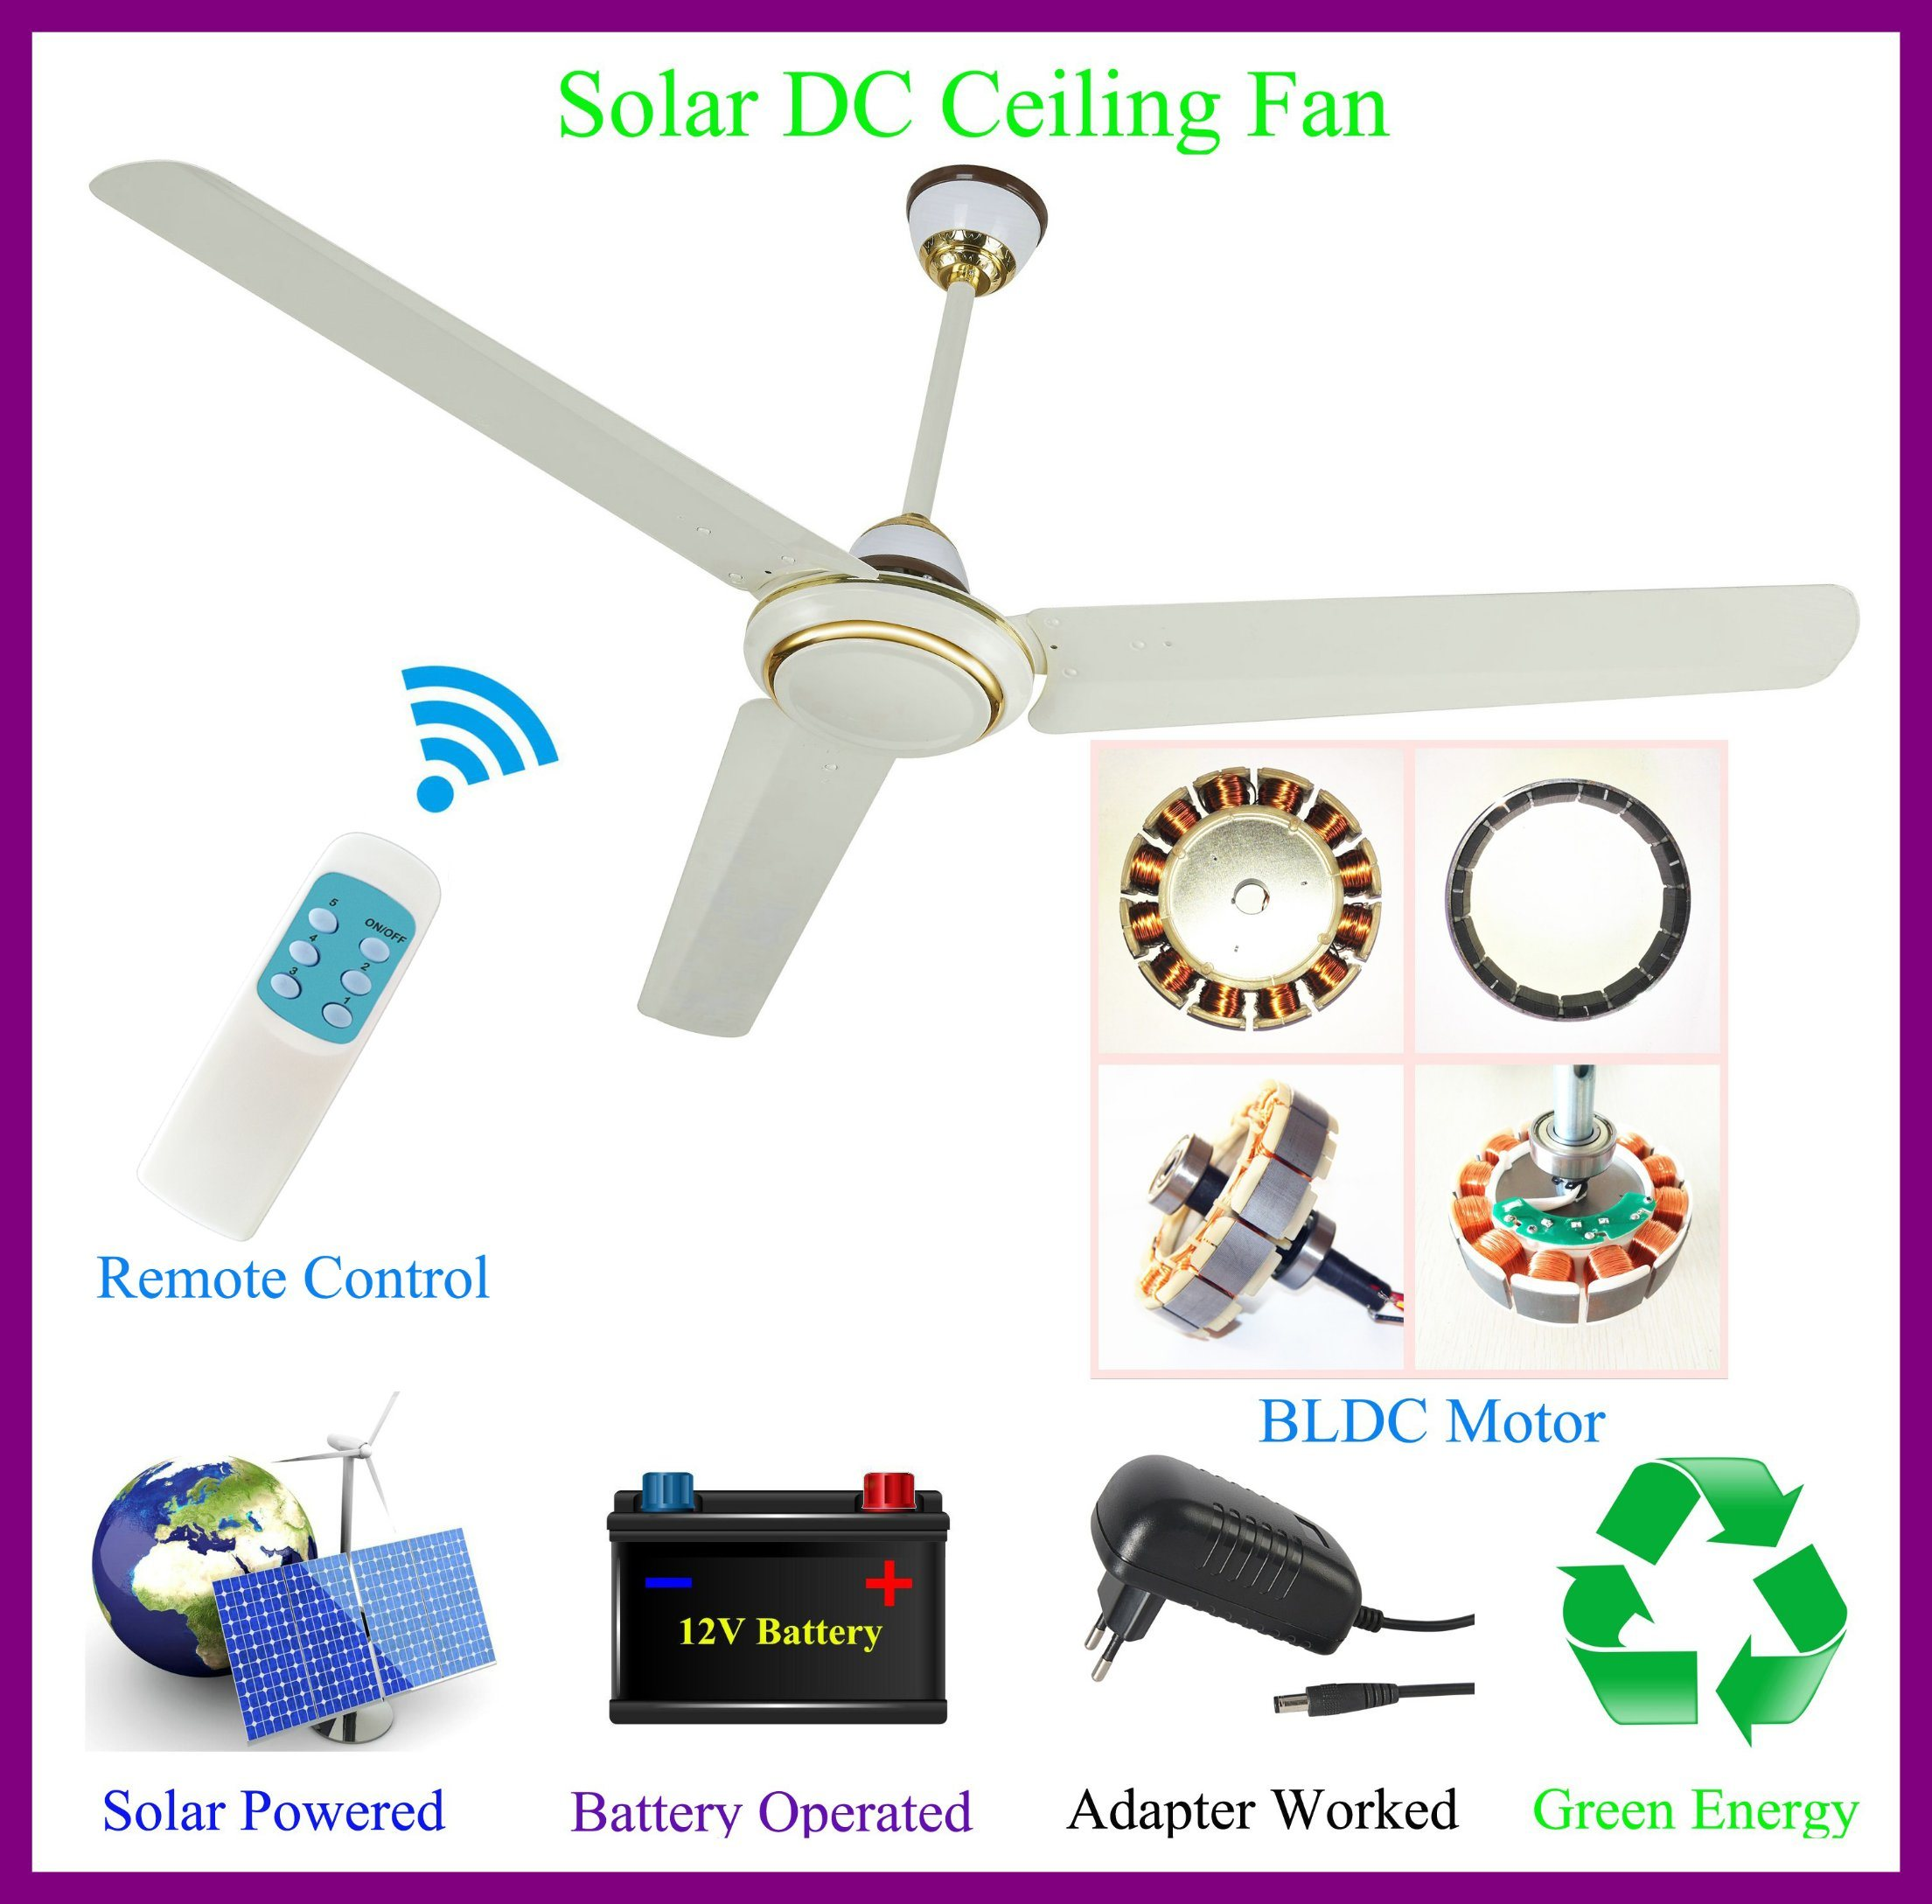 ceilings solar super high xvkewfqwbyuo volt china fan speed dc ceiling product